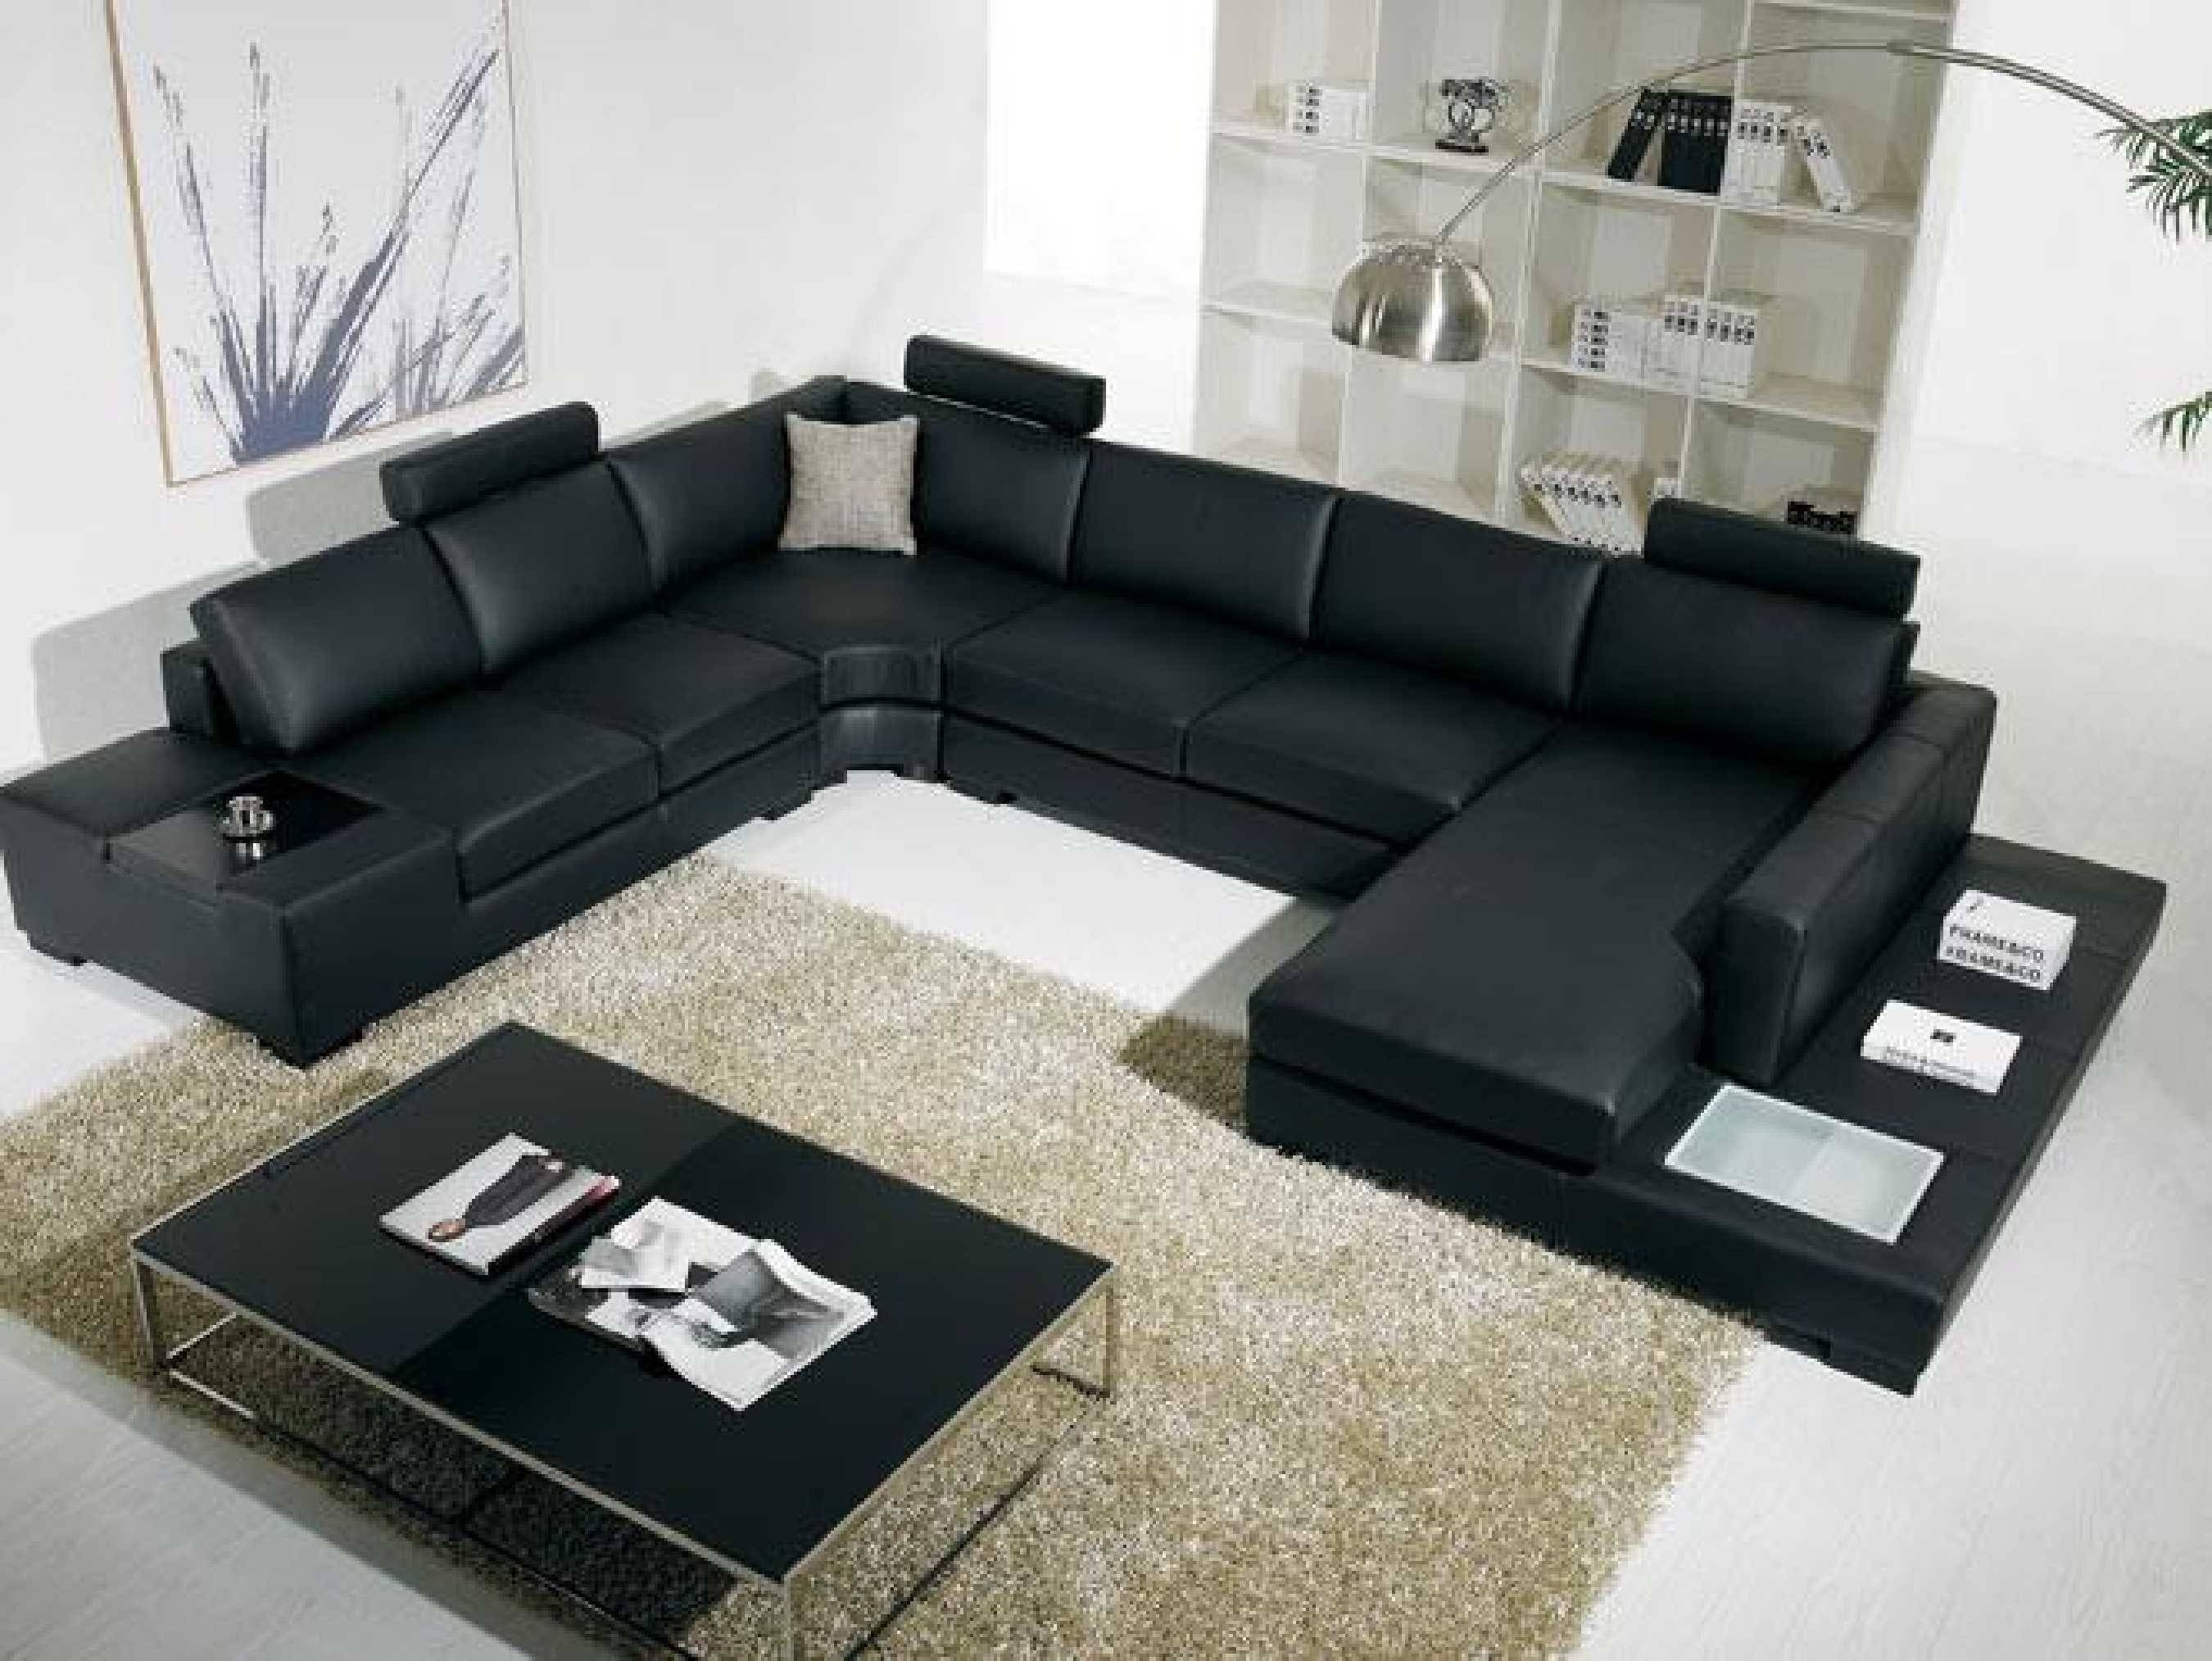 Black Modern Sectional Sofa With End Table Corner - S3Net with Black Modern Sectional Sofas (Image 1 of 15)